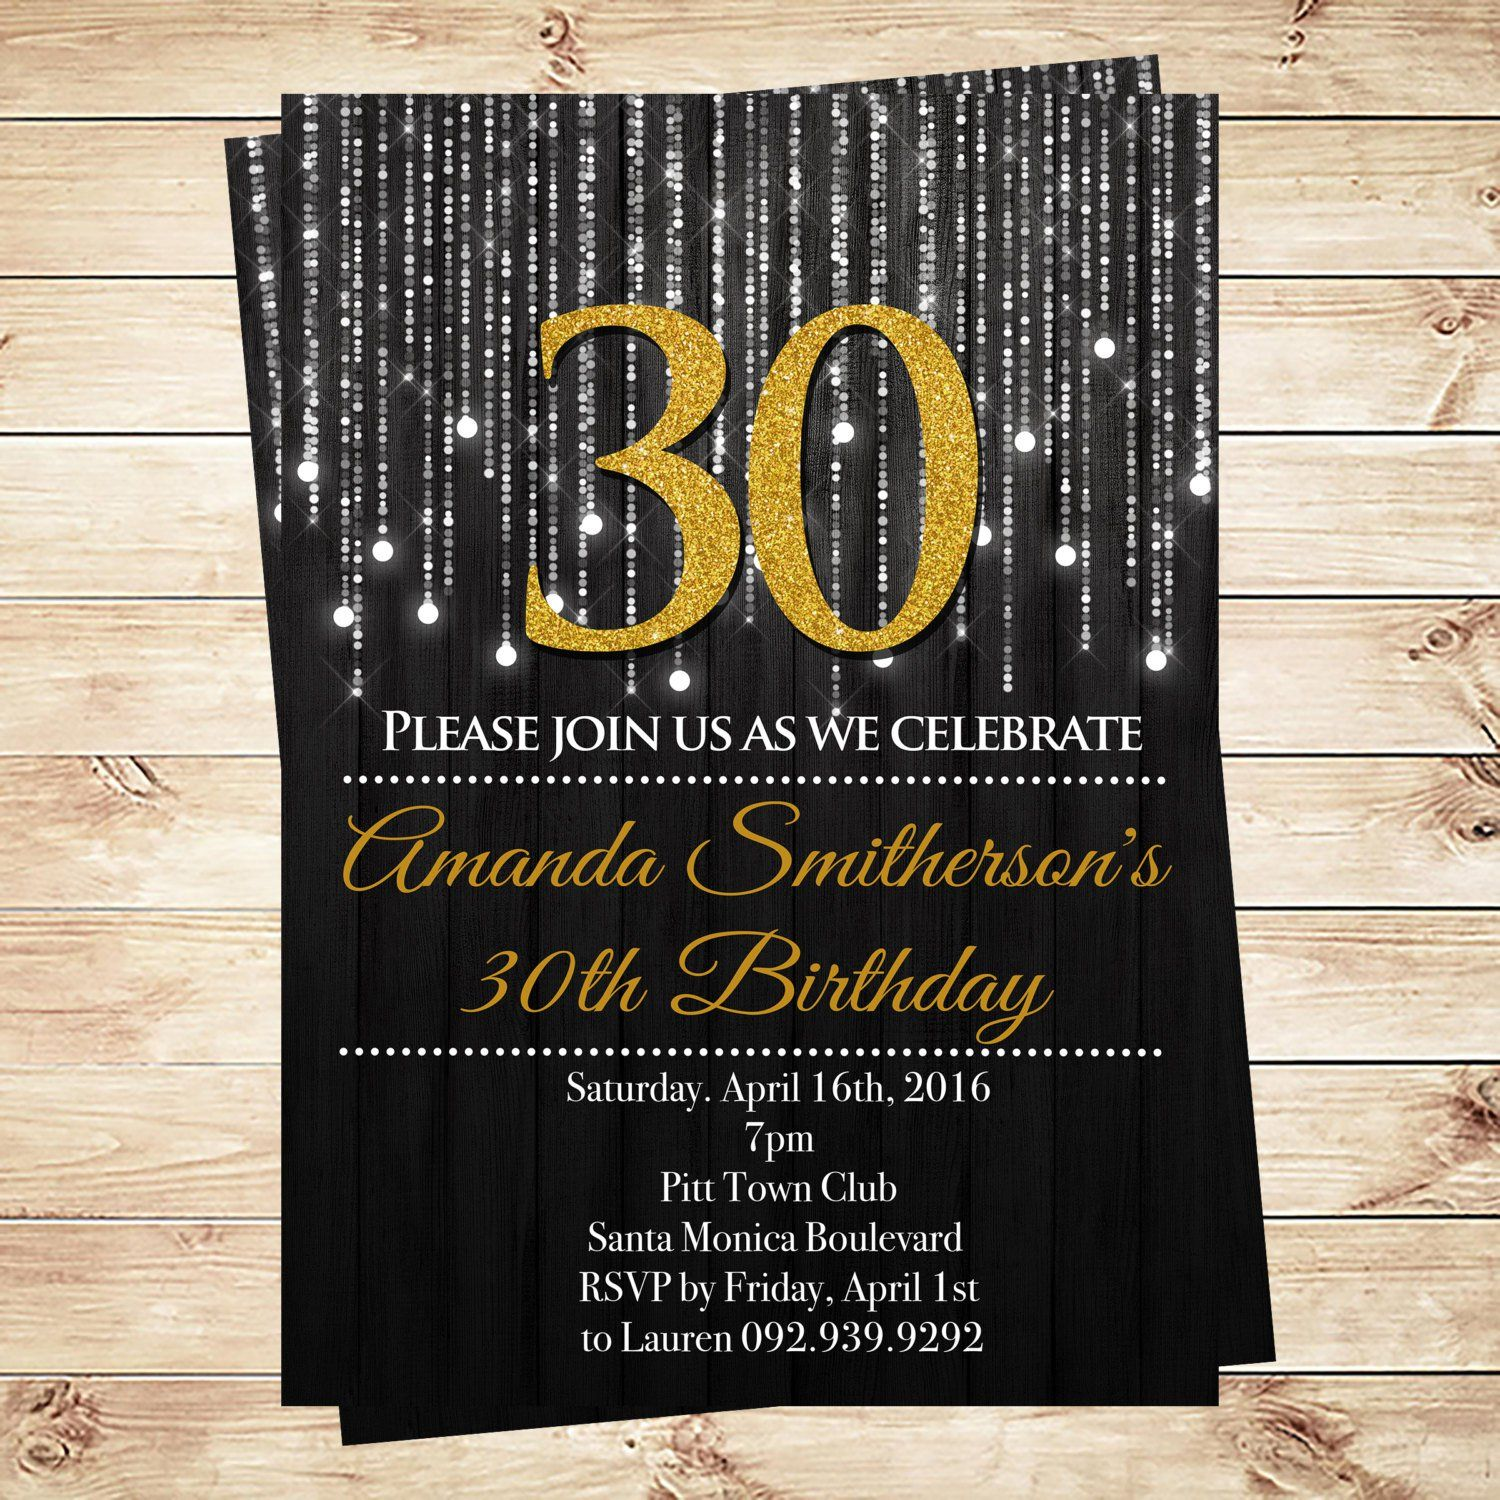 30th Birthday Invitations Free Download Birthday Invitations